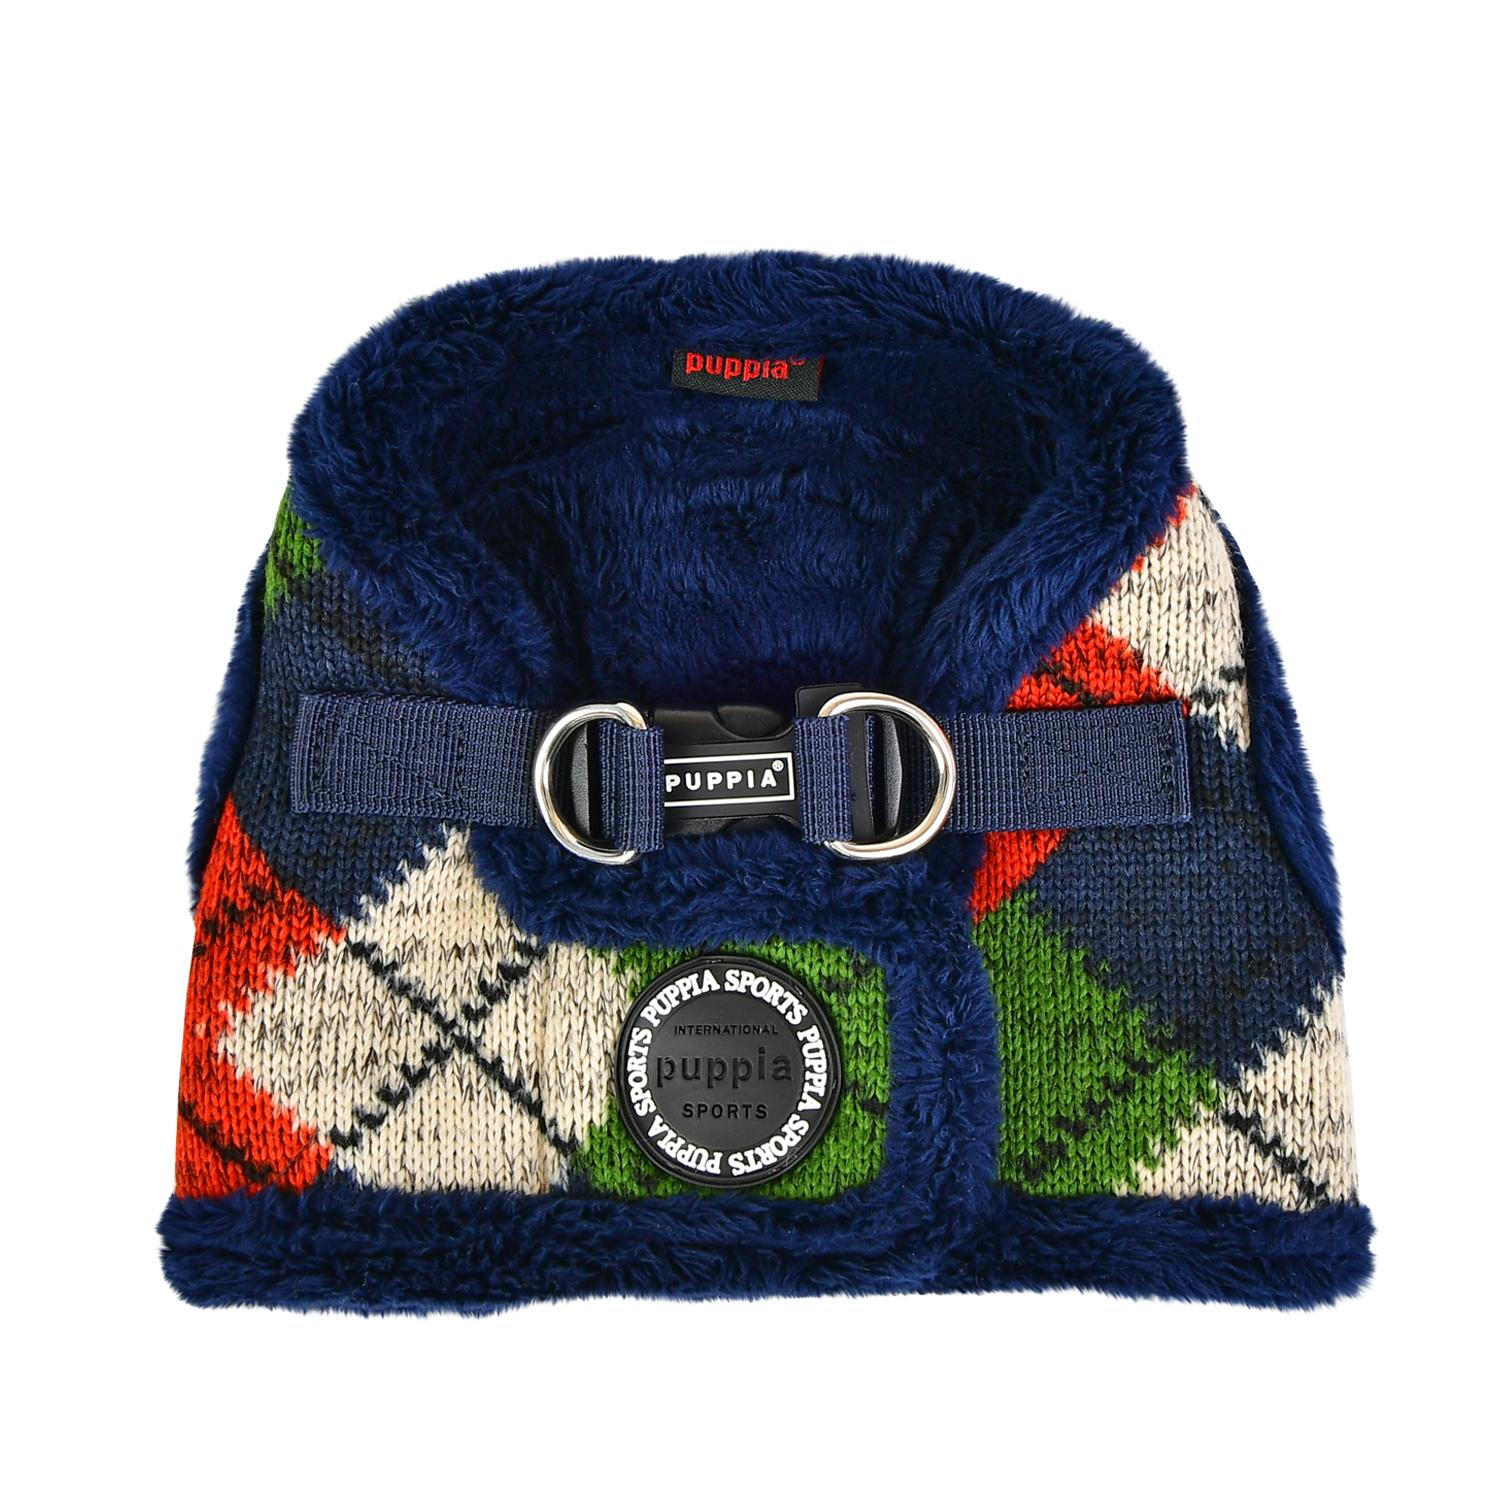 Jolly Vest Dog Harness by Puppia - Navy